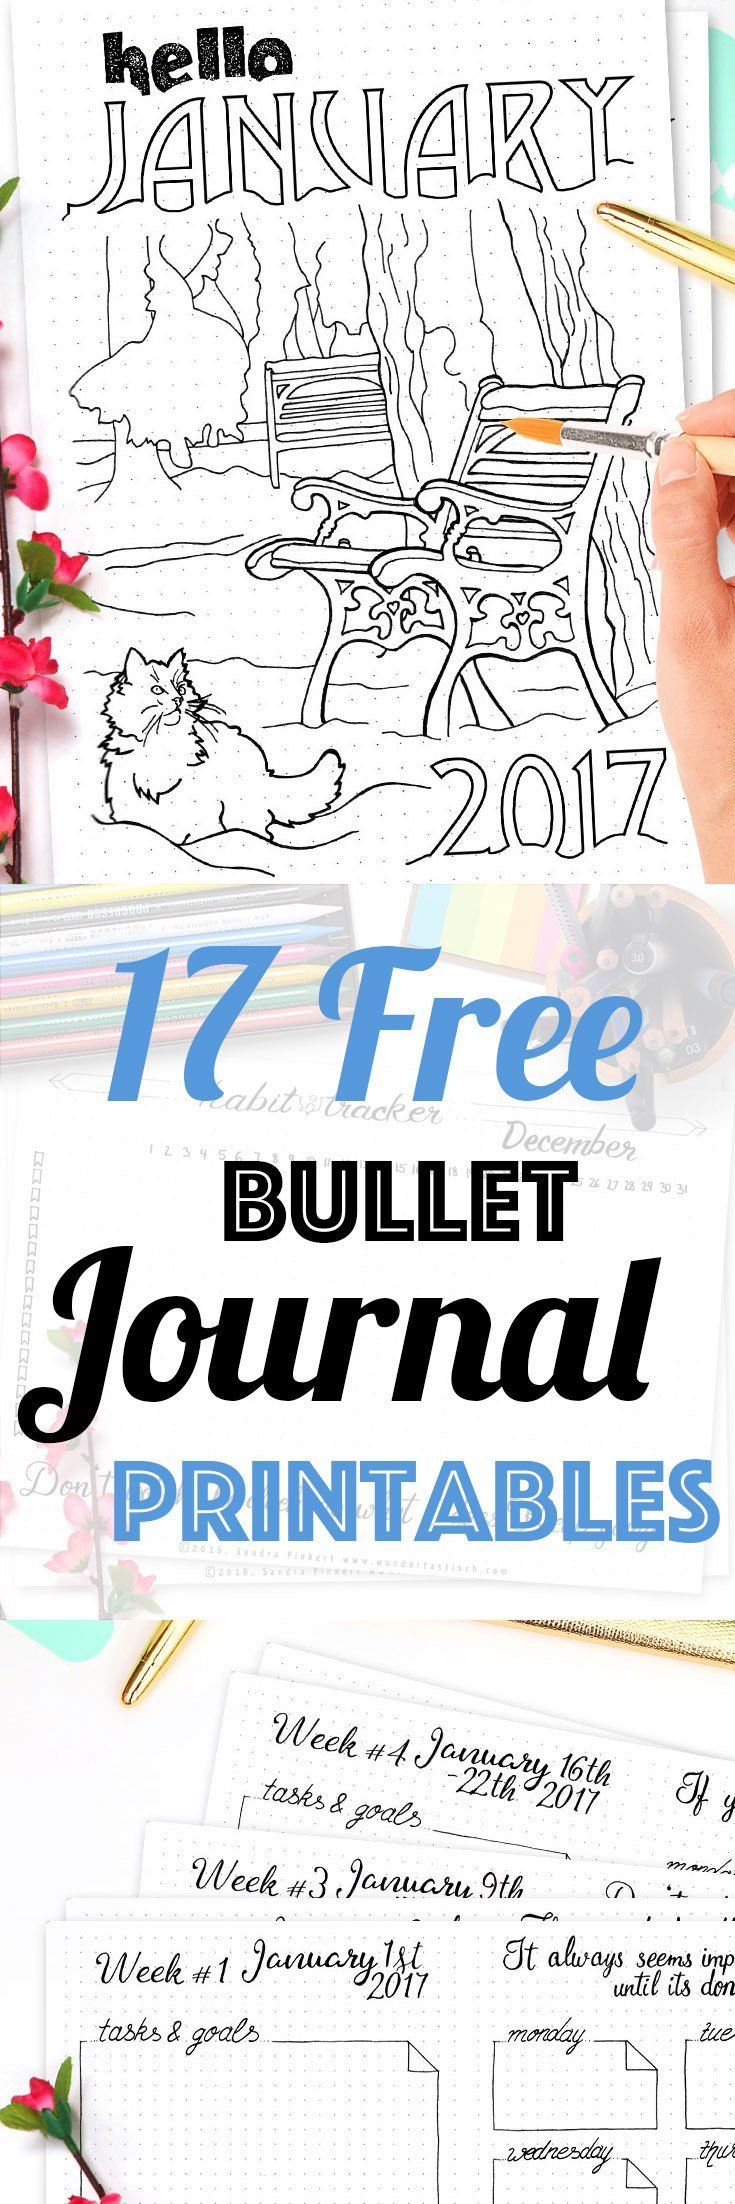 how to make your own bullets in word